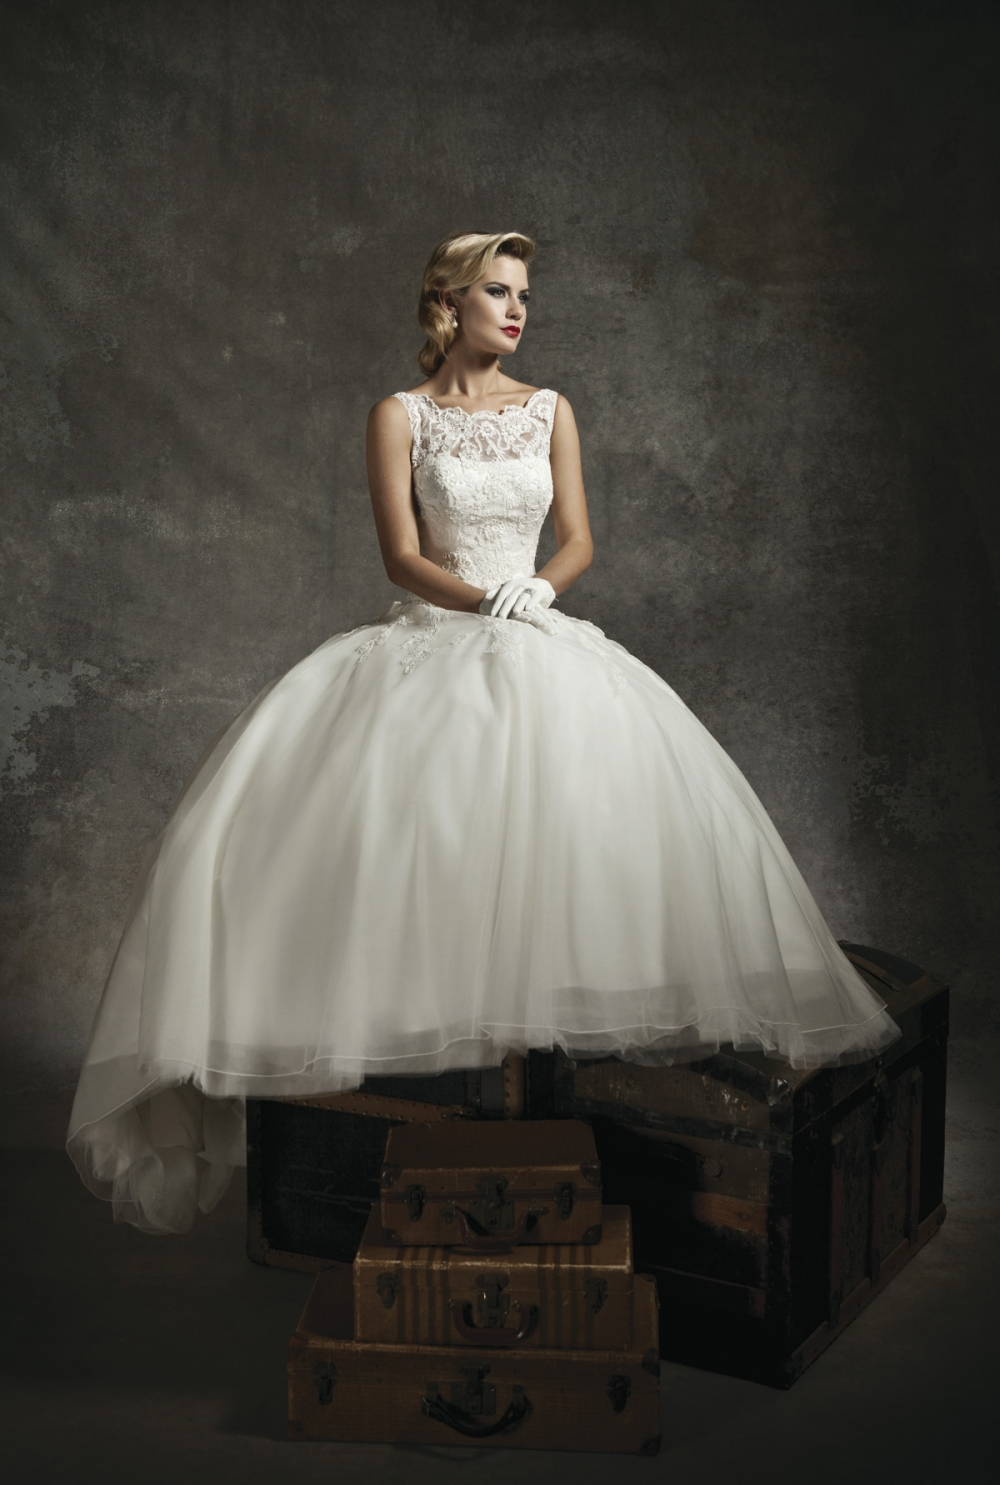 Win a wedding dress at the wed show for Win free wedding dress